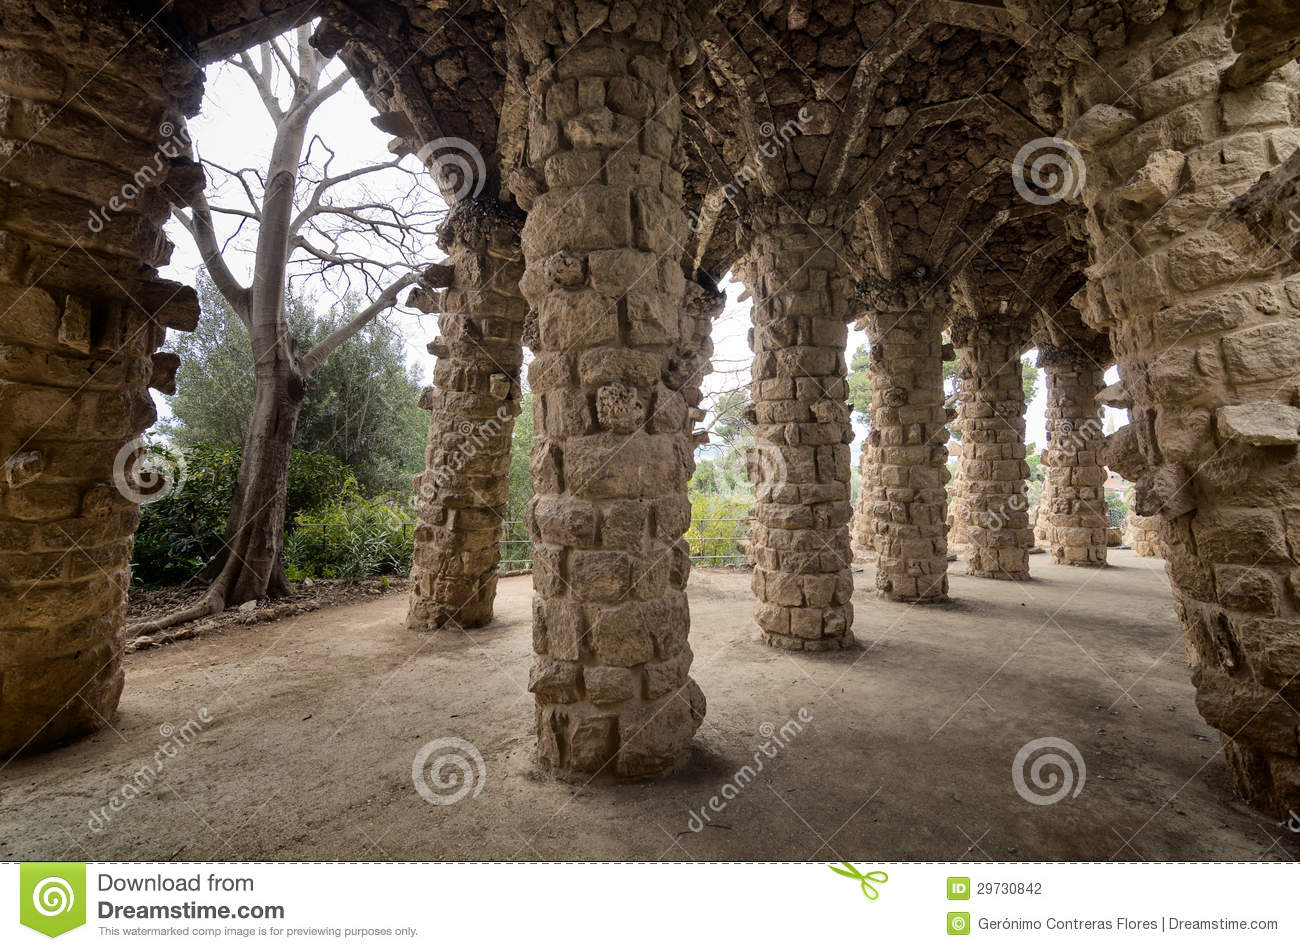 Barcelona Amazing Stone Arches At Park Guell The Famous